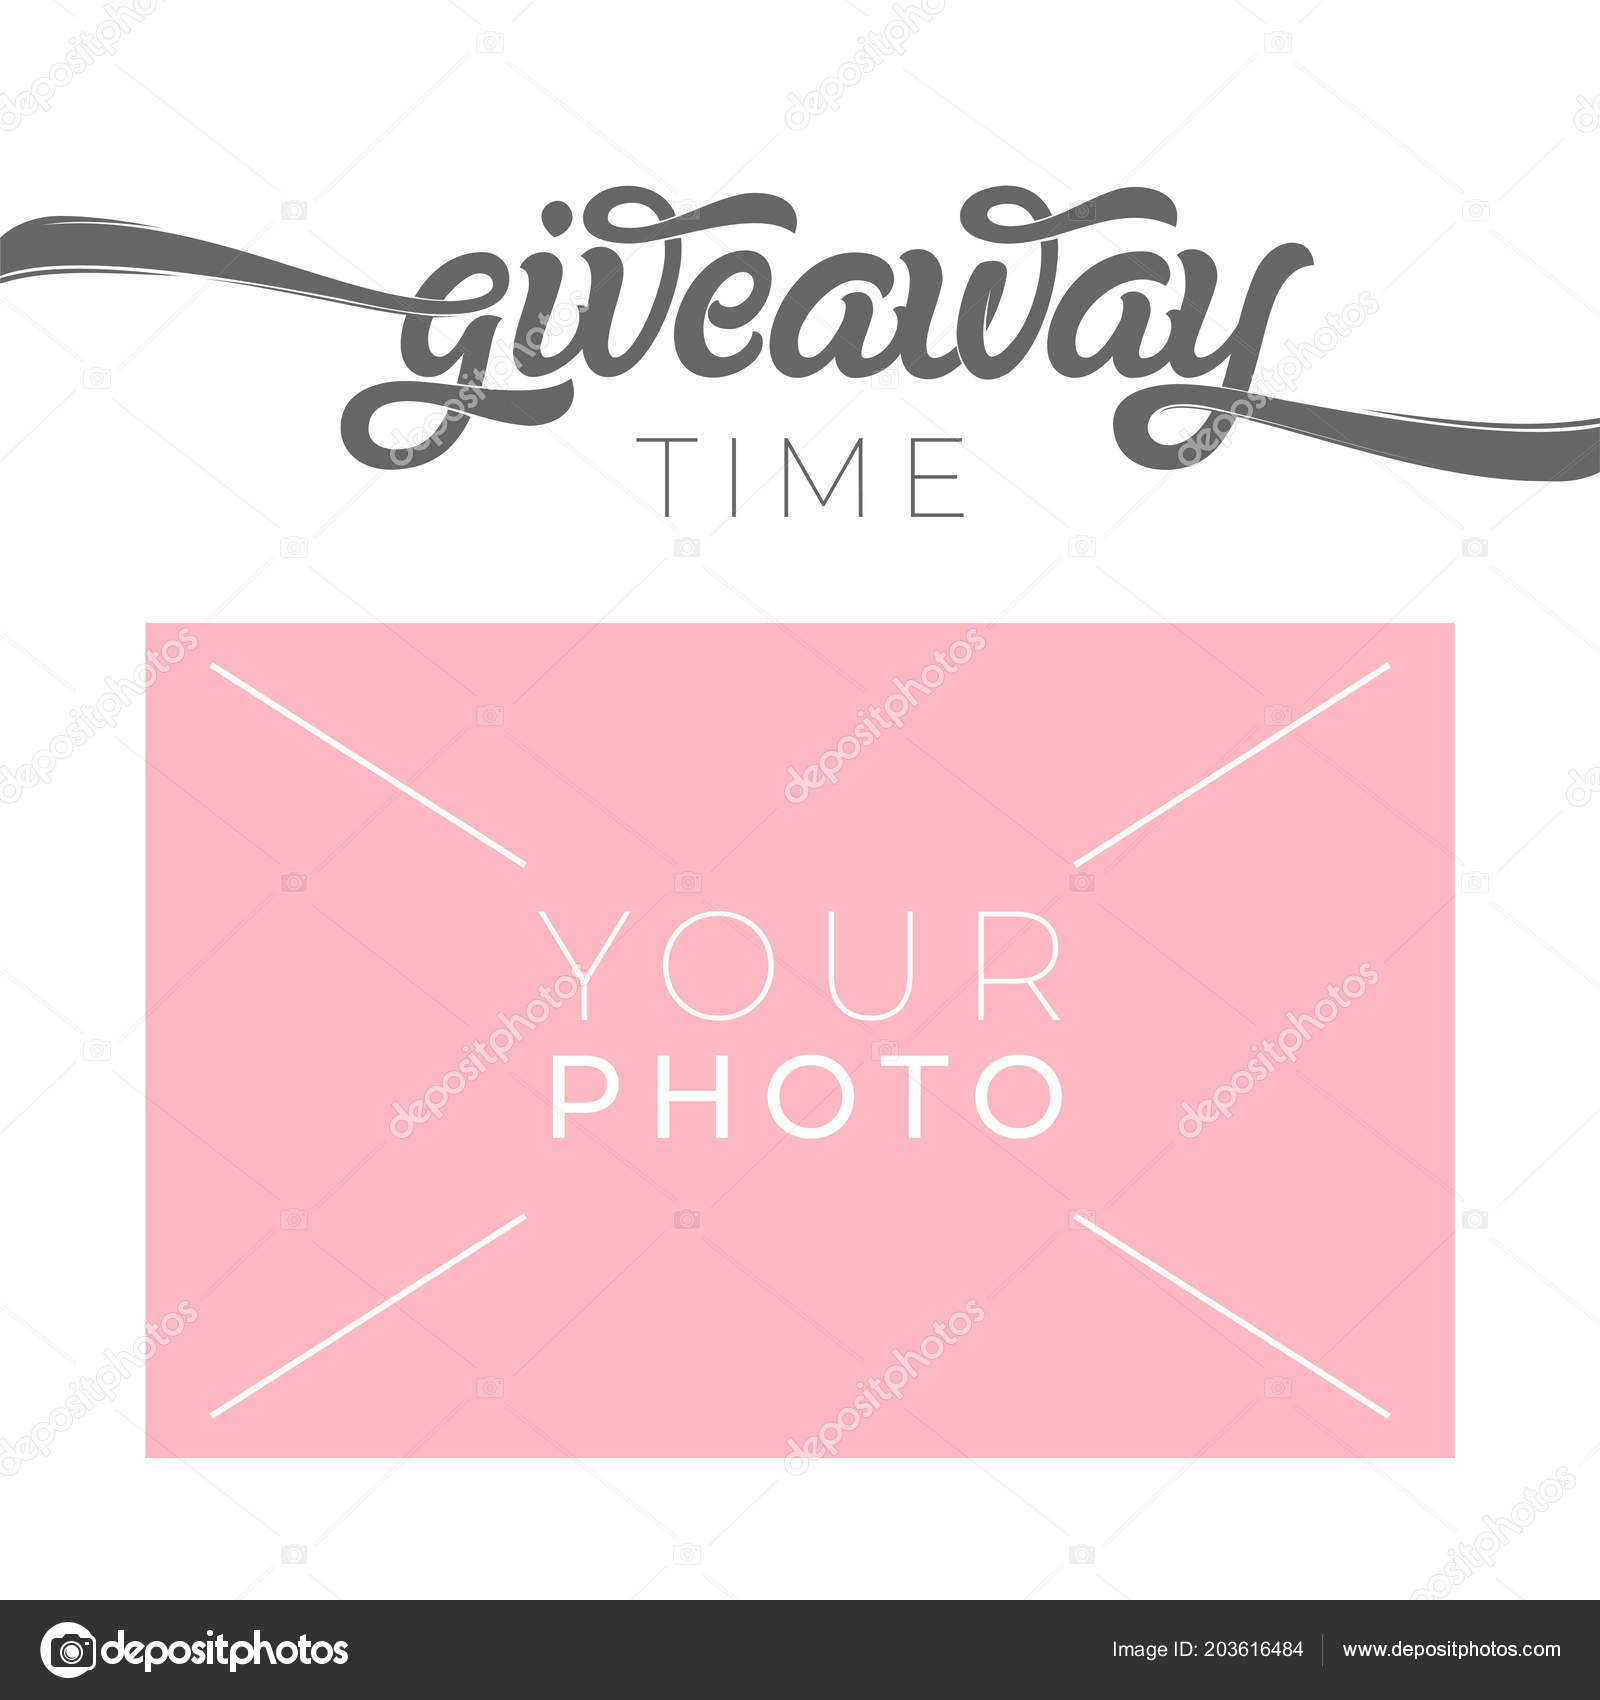 giveaway banner template for social media with place for your photo